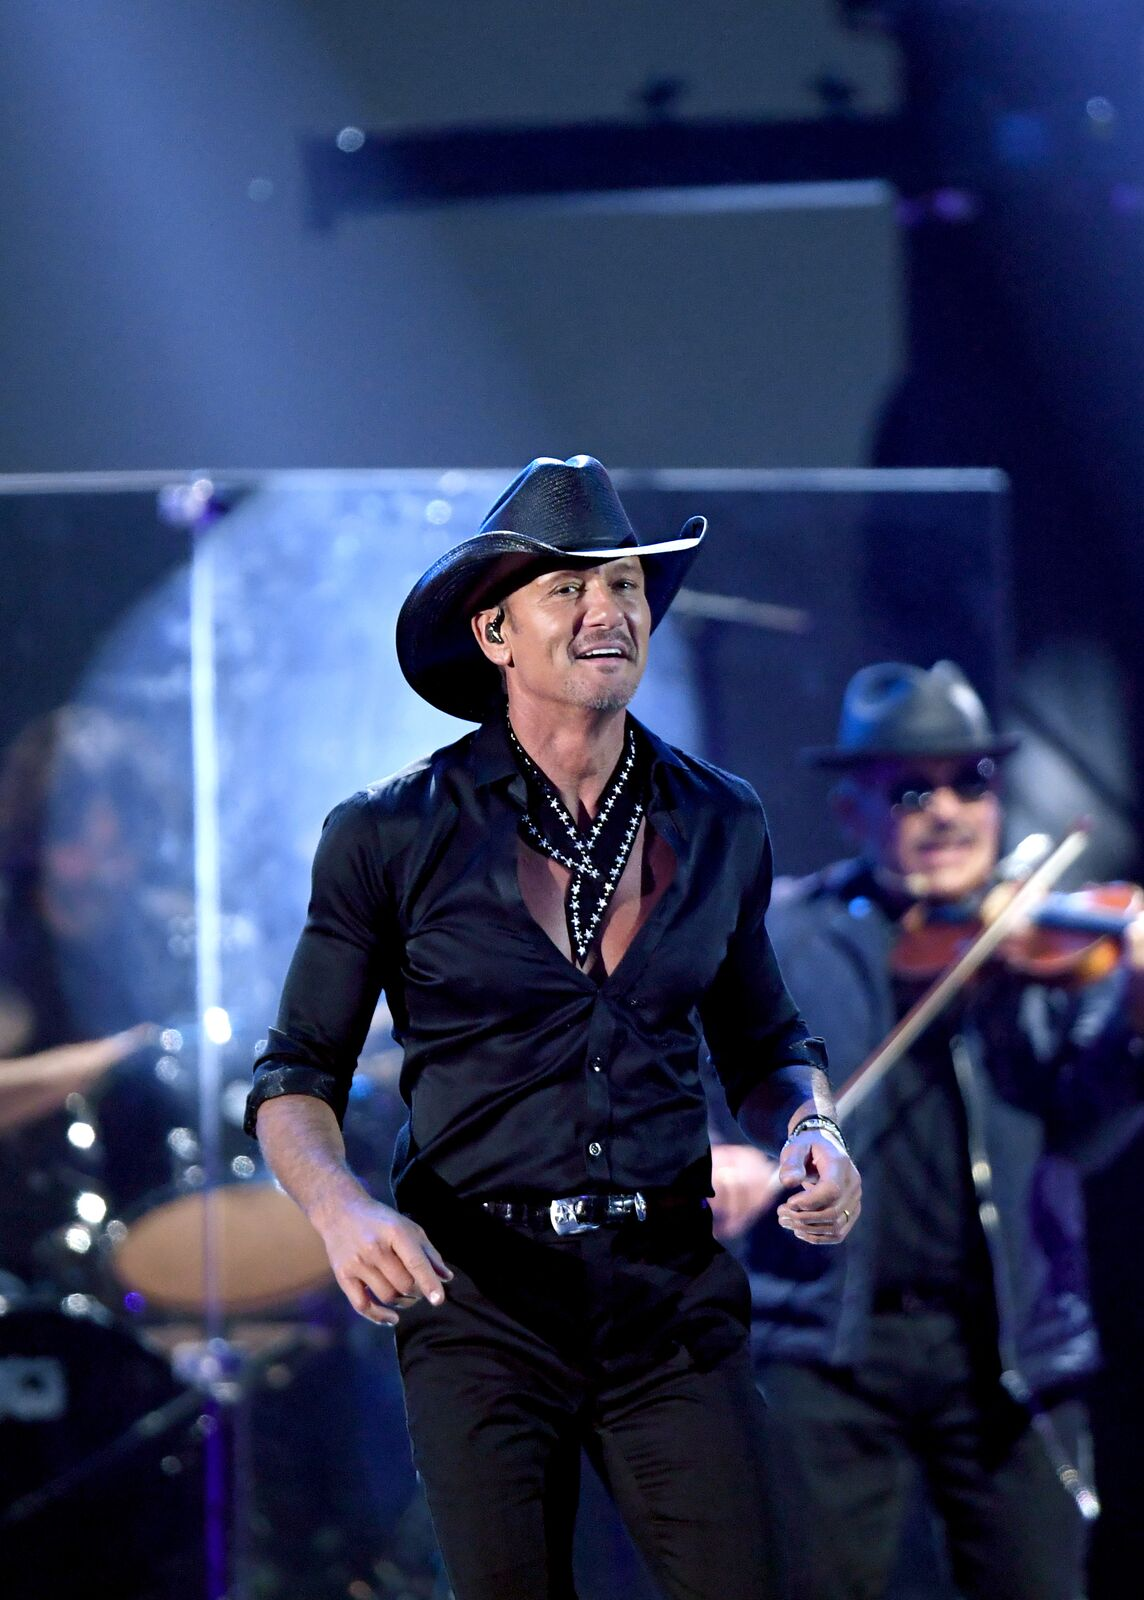 Tim McGraw onstage during the iHeartRadio Music Festival at T-Mobile Arena on September 20, 2019. | Photo: Getty Images